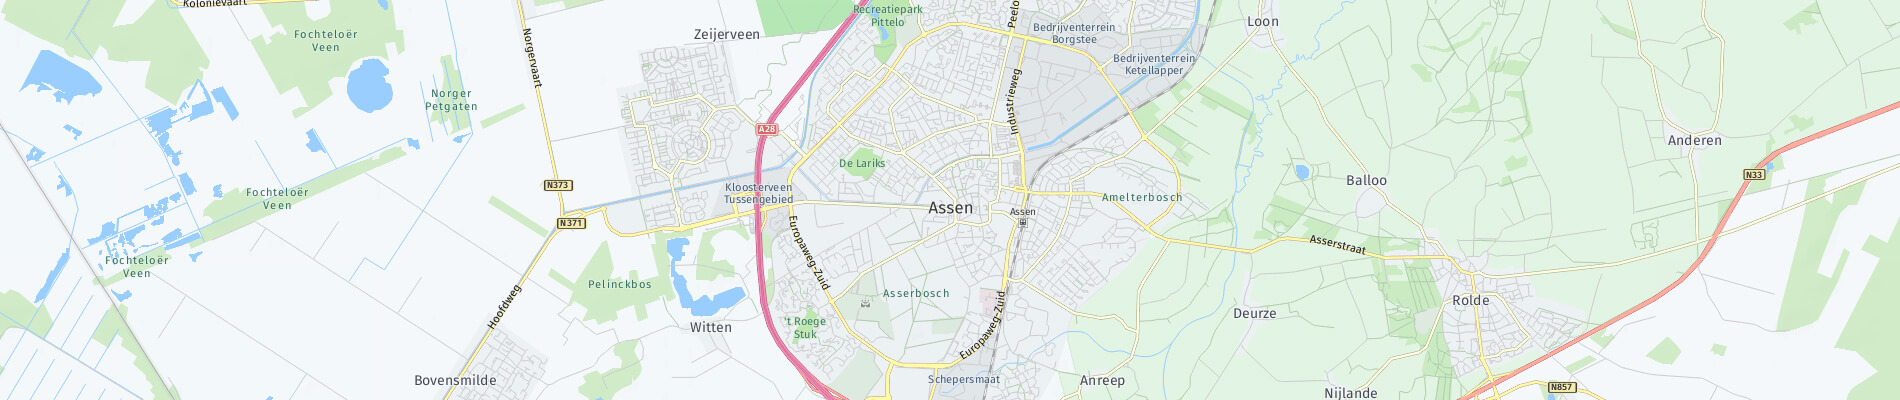 assets/images/cities/assen.jpg